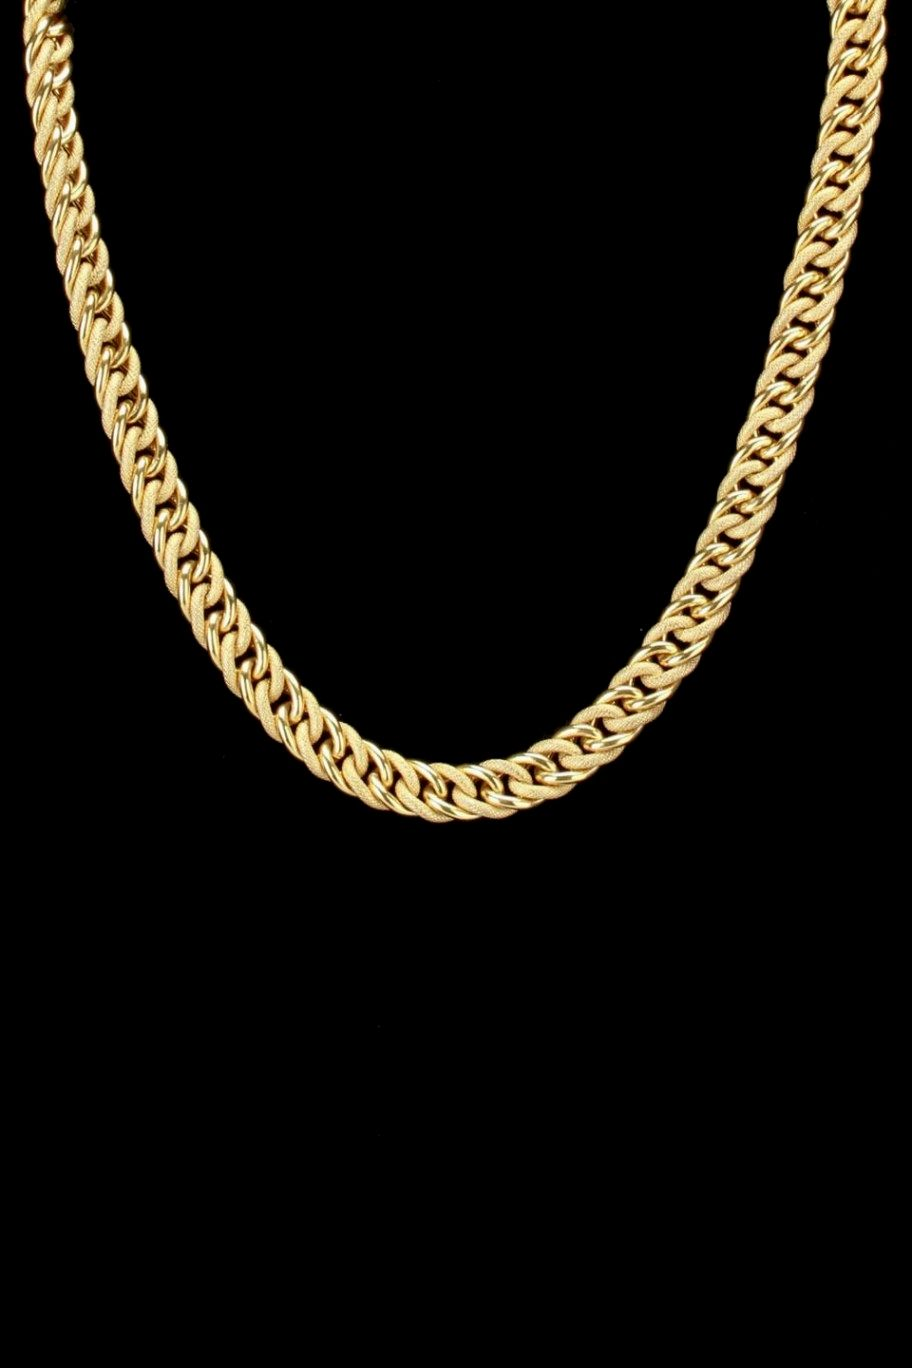 Miami Cuban Iced Out 24K Gold Layered 26 Inch ChainNecklace Complete with Black Velvet Pouch 12mm Wide